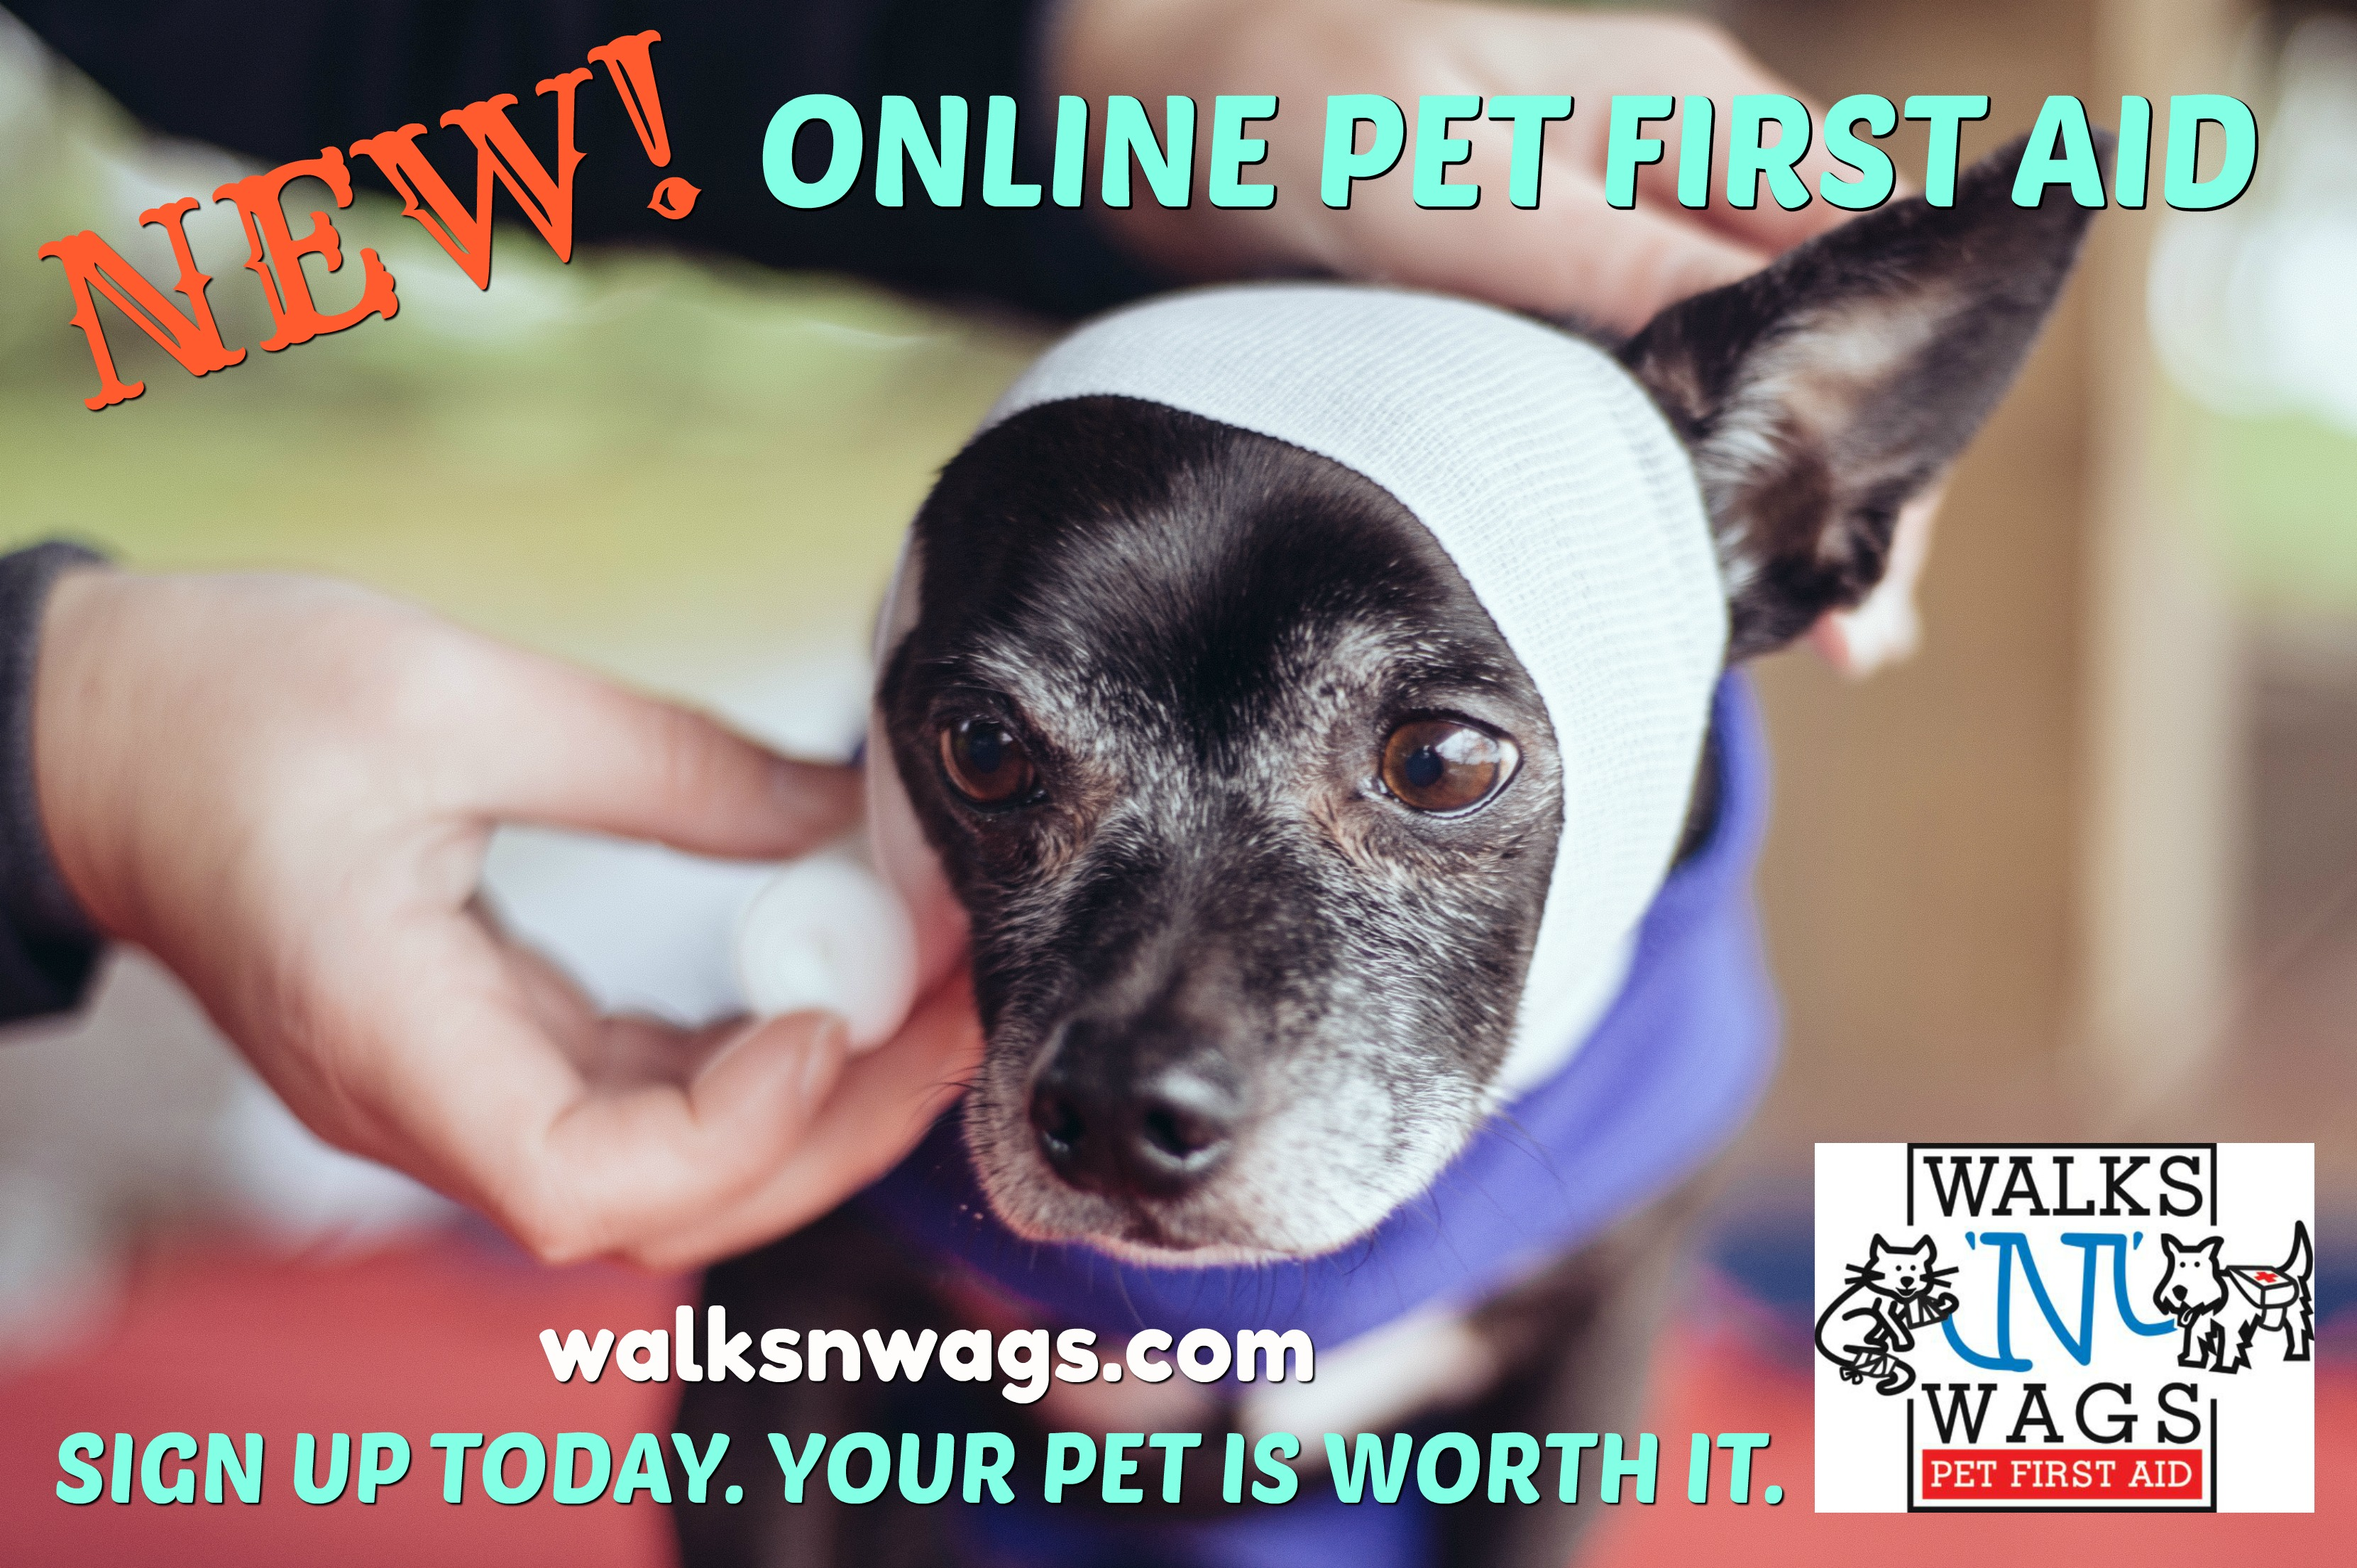 Pet first aid course 4 dog cats canada us pet first aid introducing online walks n wags pet first aid certification 1betcityfo Choice Image